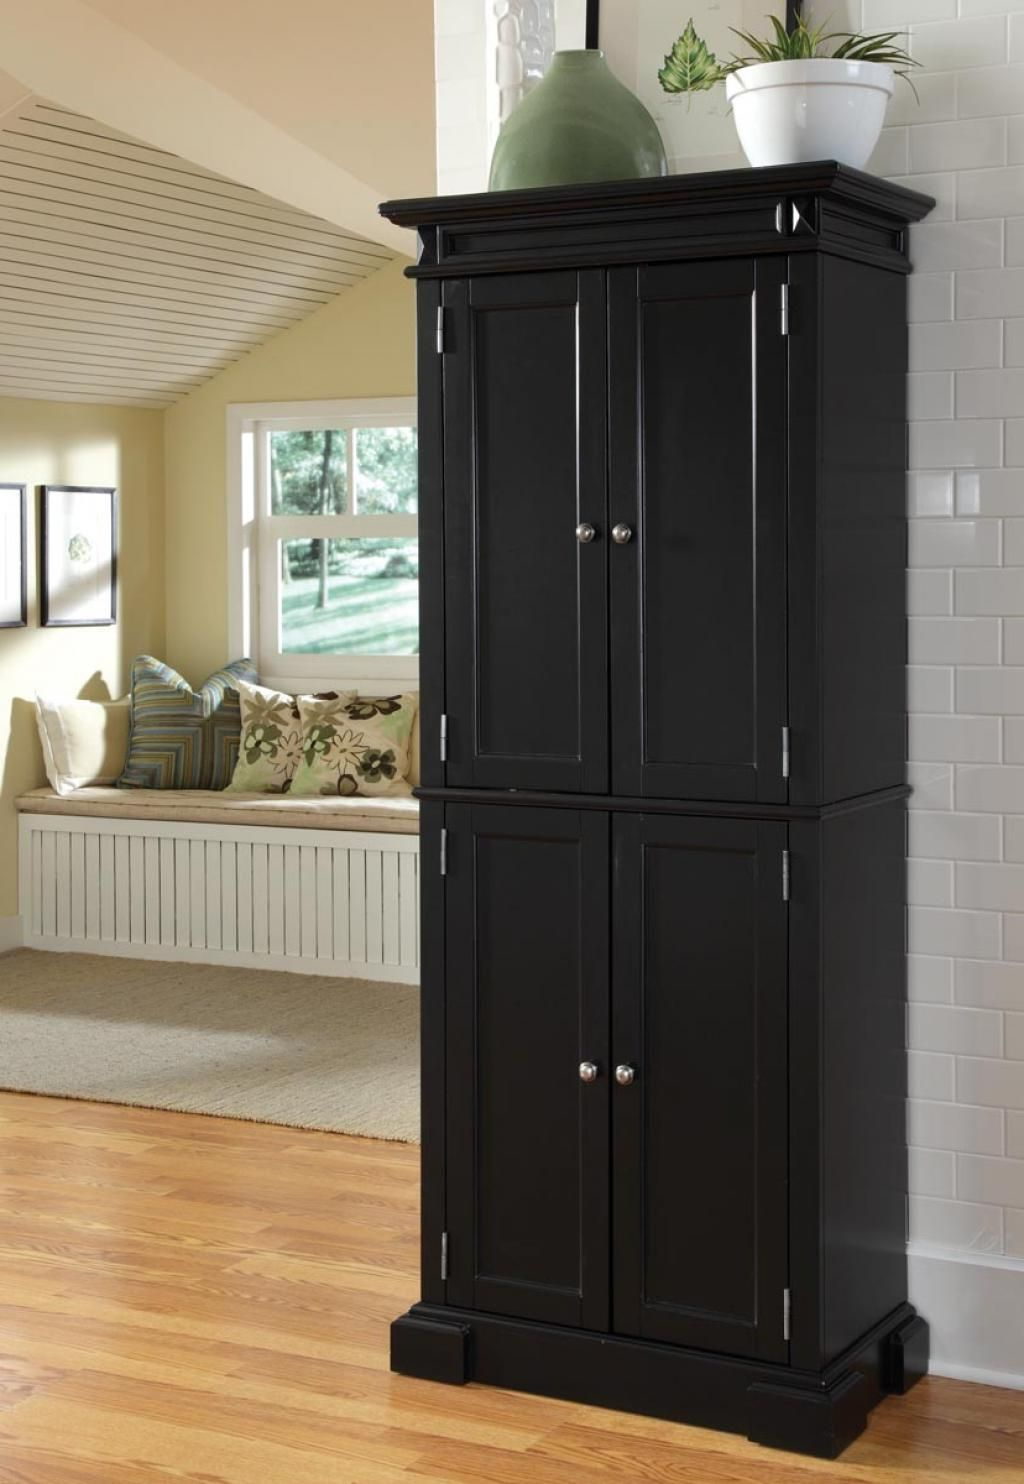 custom kitchen pantry designs. Kitchen Pantry Cabinet Ideas Baytownkitchen Storage With Black Small And  Long Wooden Style Design